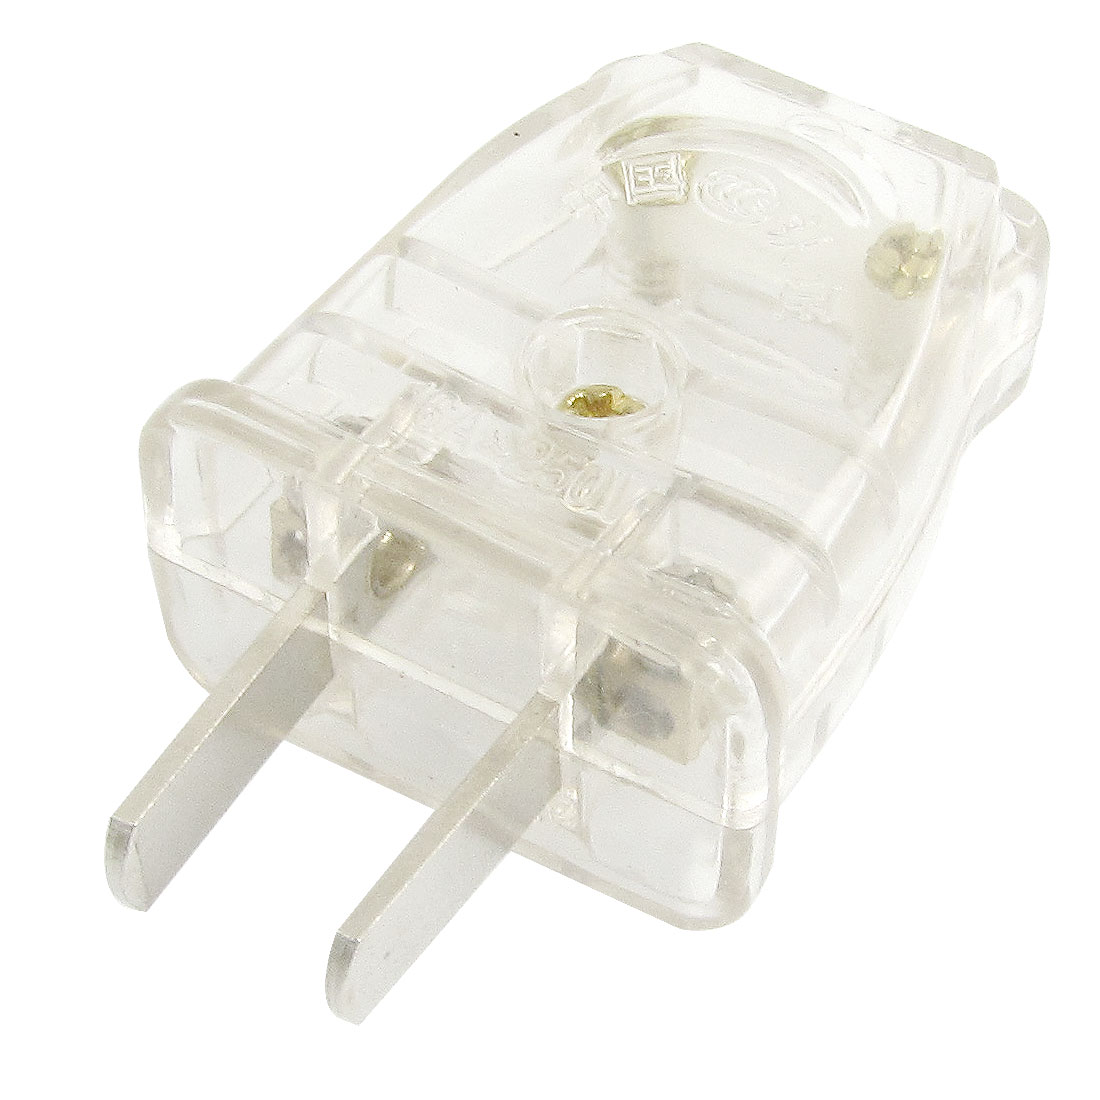 Home Clear 250V 16A 2 Pin US Plug Cable Connector